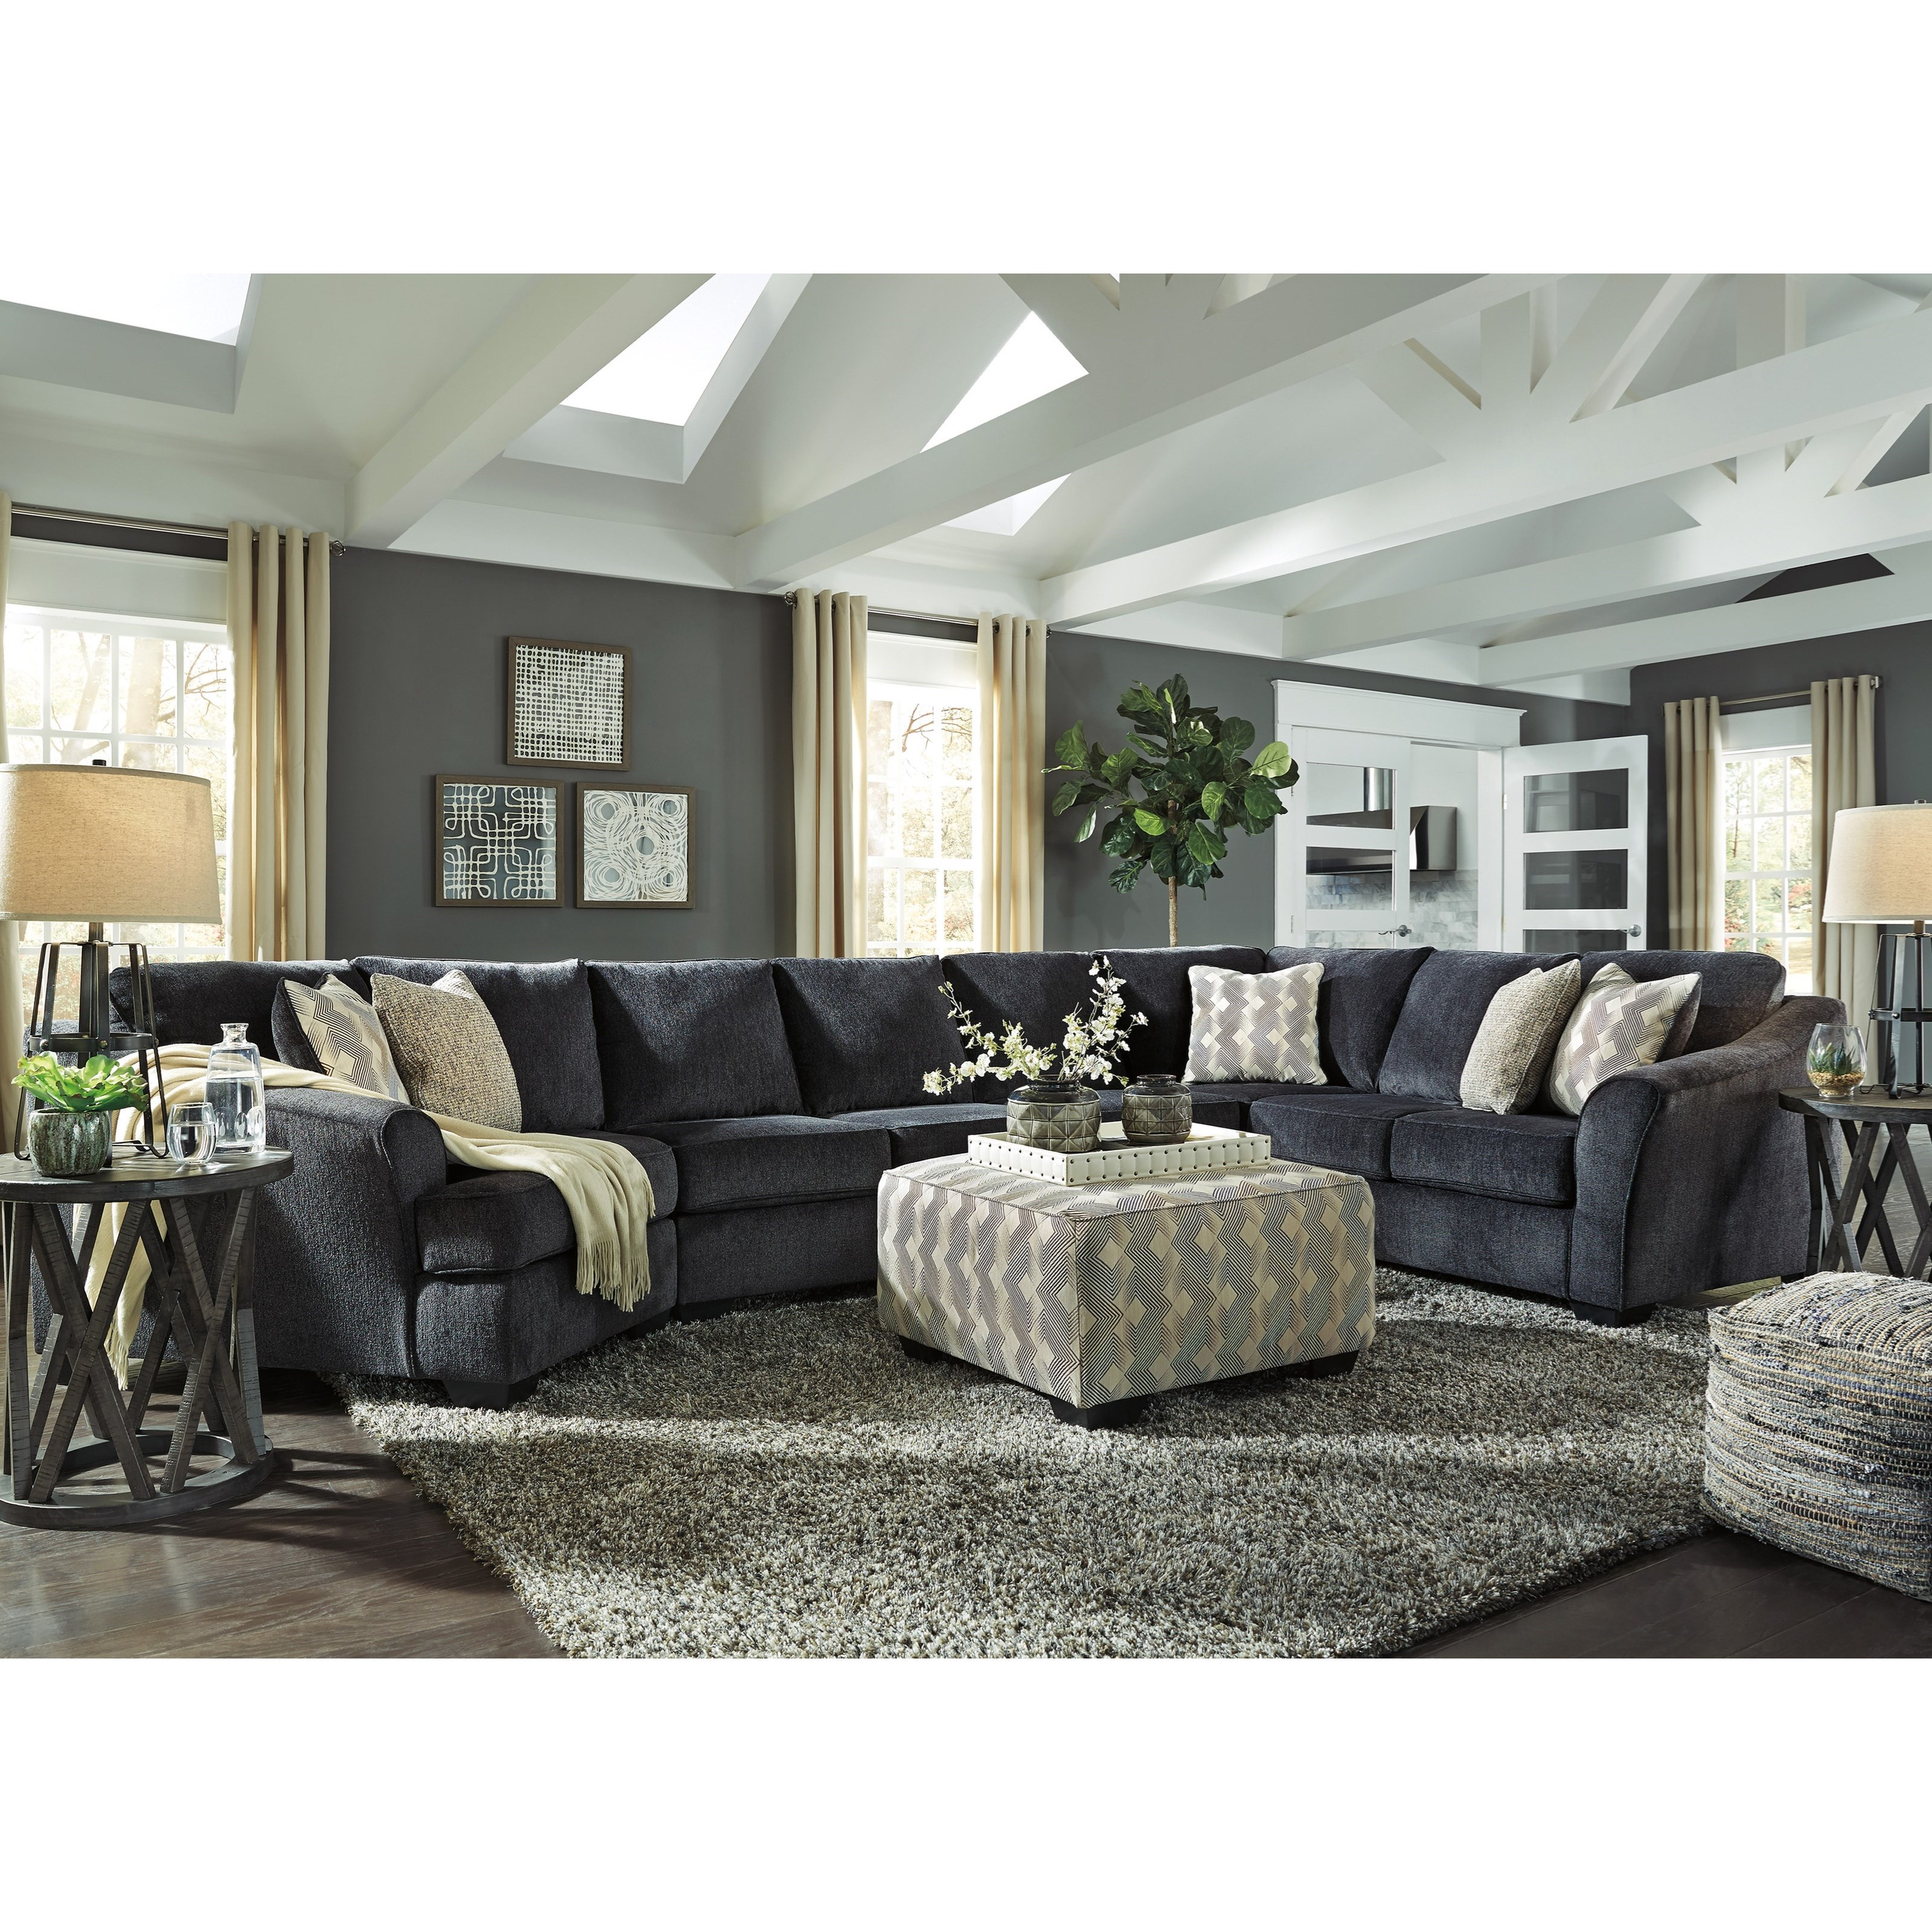 Eltmann Stationary Living Room Group by Signature Design by Ashley at Northeast Factory Direct